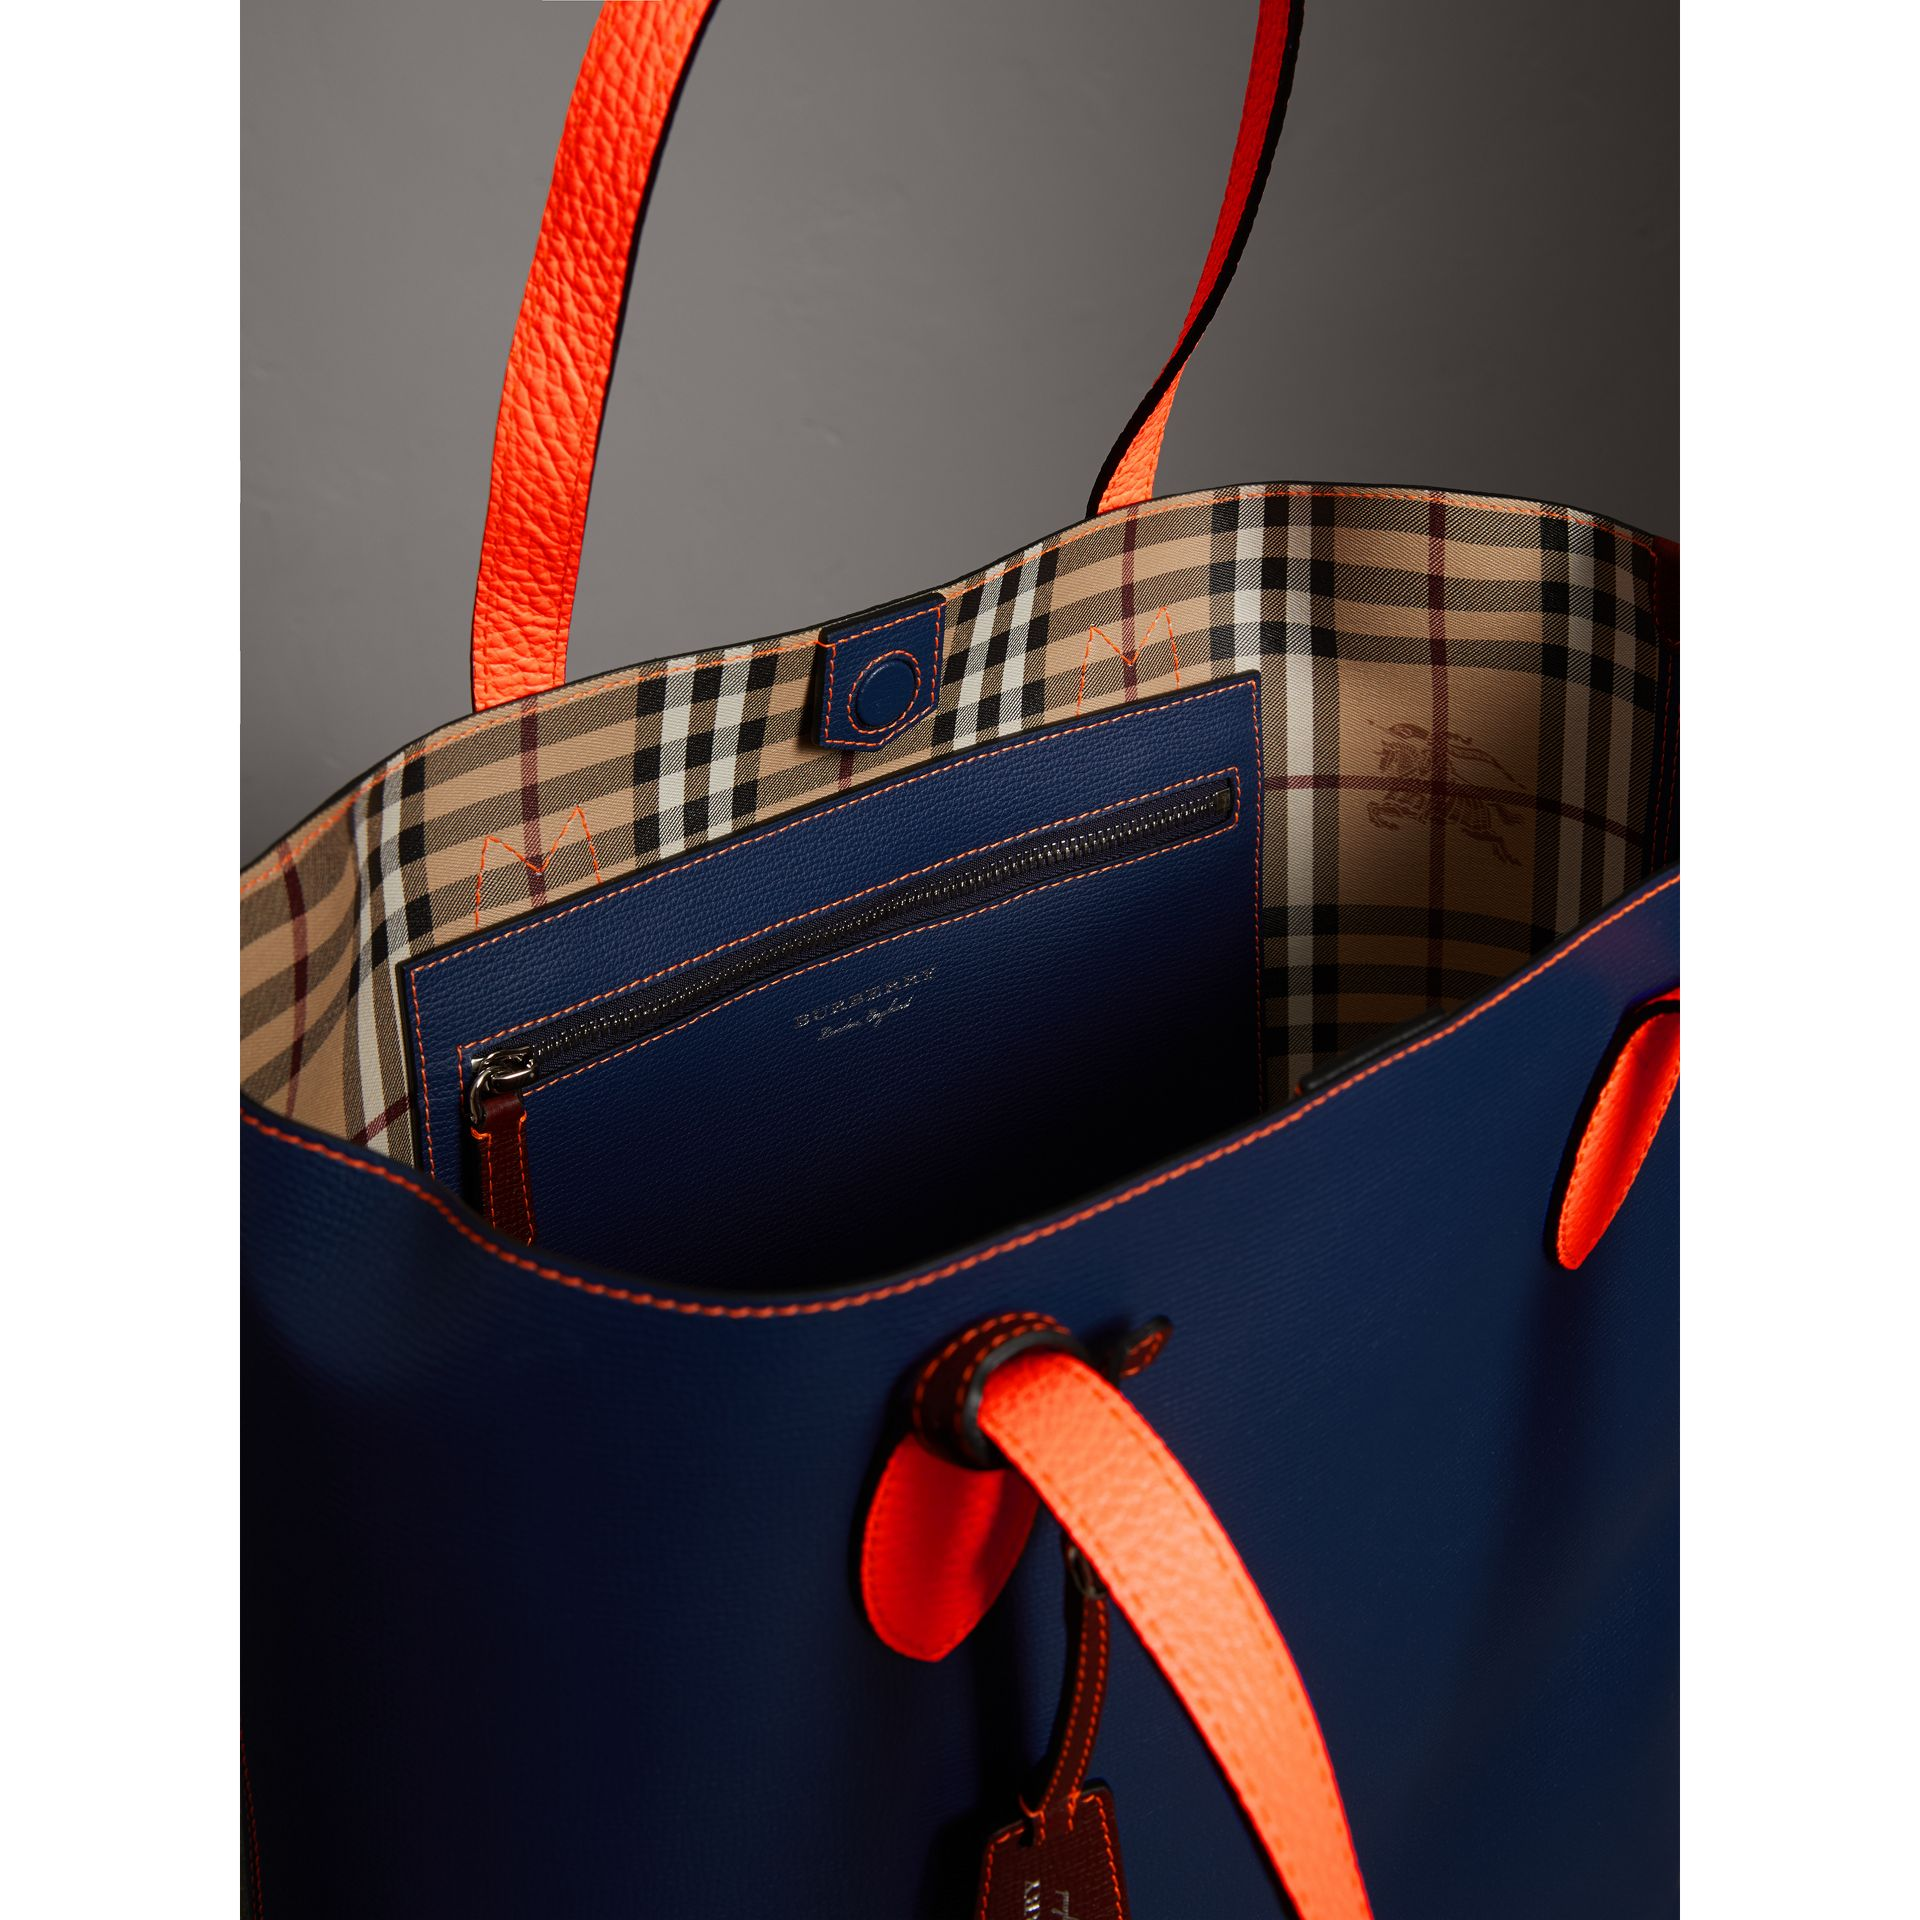 Medium Two-tone Coated Leather Tote in Dark Ultramarine | Burberry United Kingdom - gallery image 4